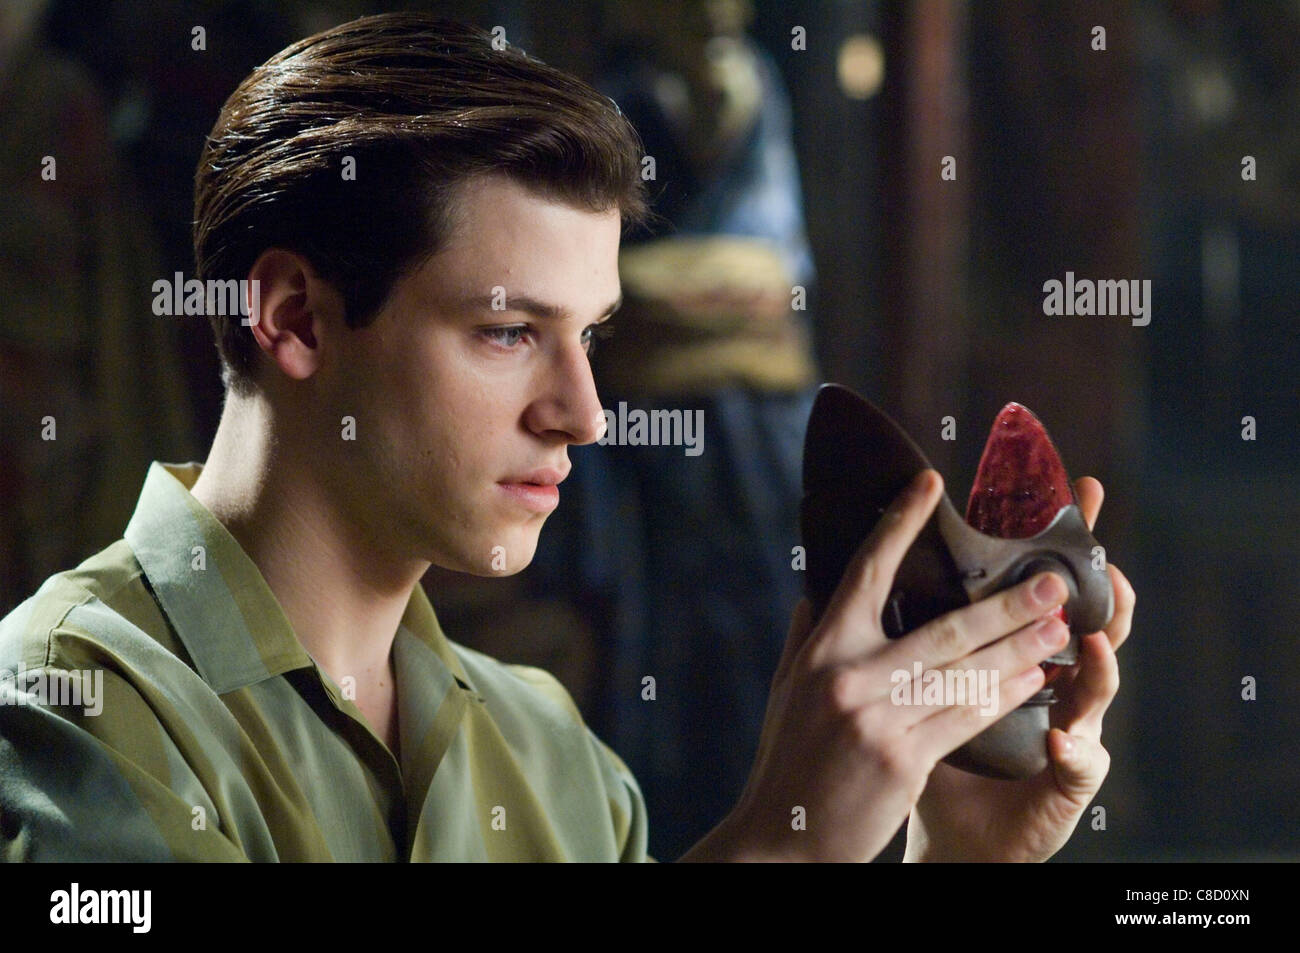 GASPARD ULLIEL HANNIBAL RISING; YOUNG HANNIBAL; HANNIBAL 4 (2007) Stock Photo